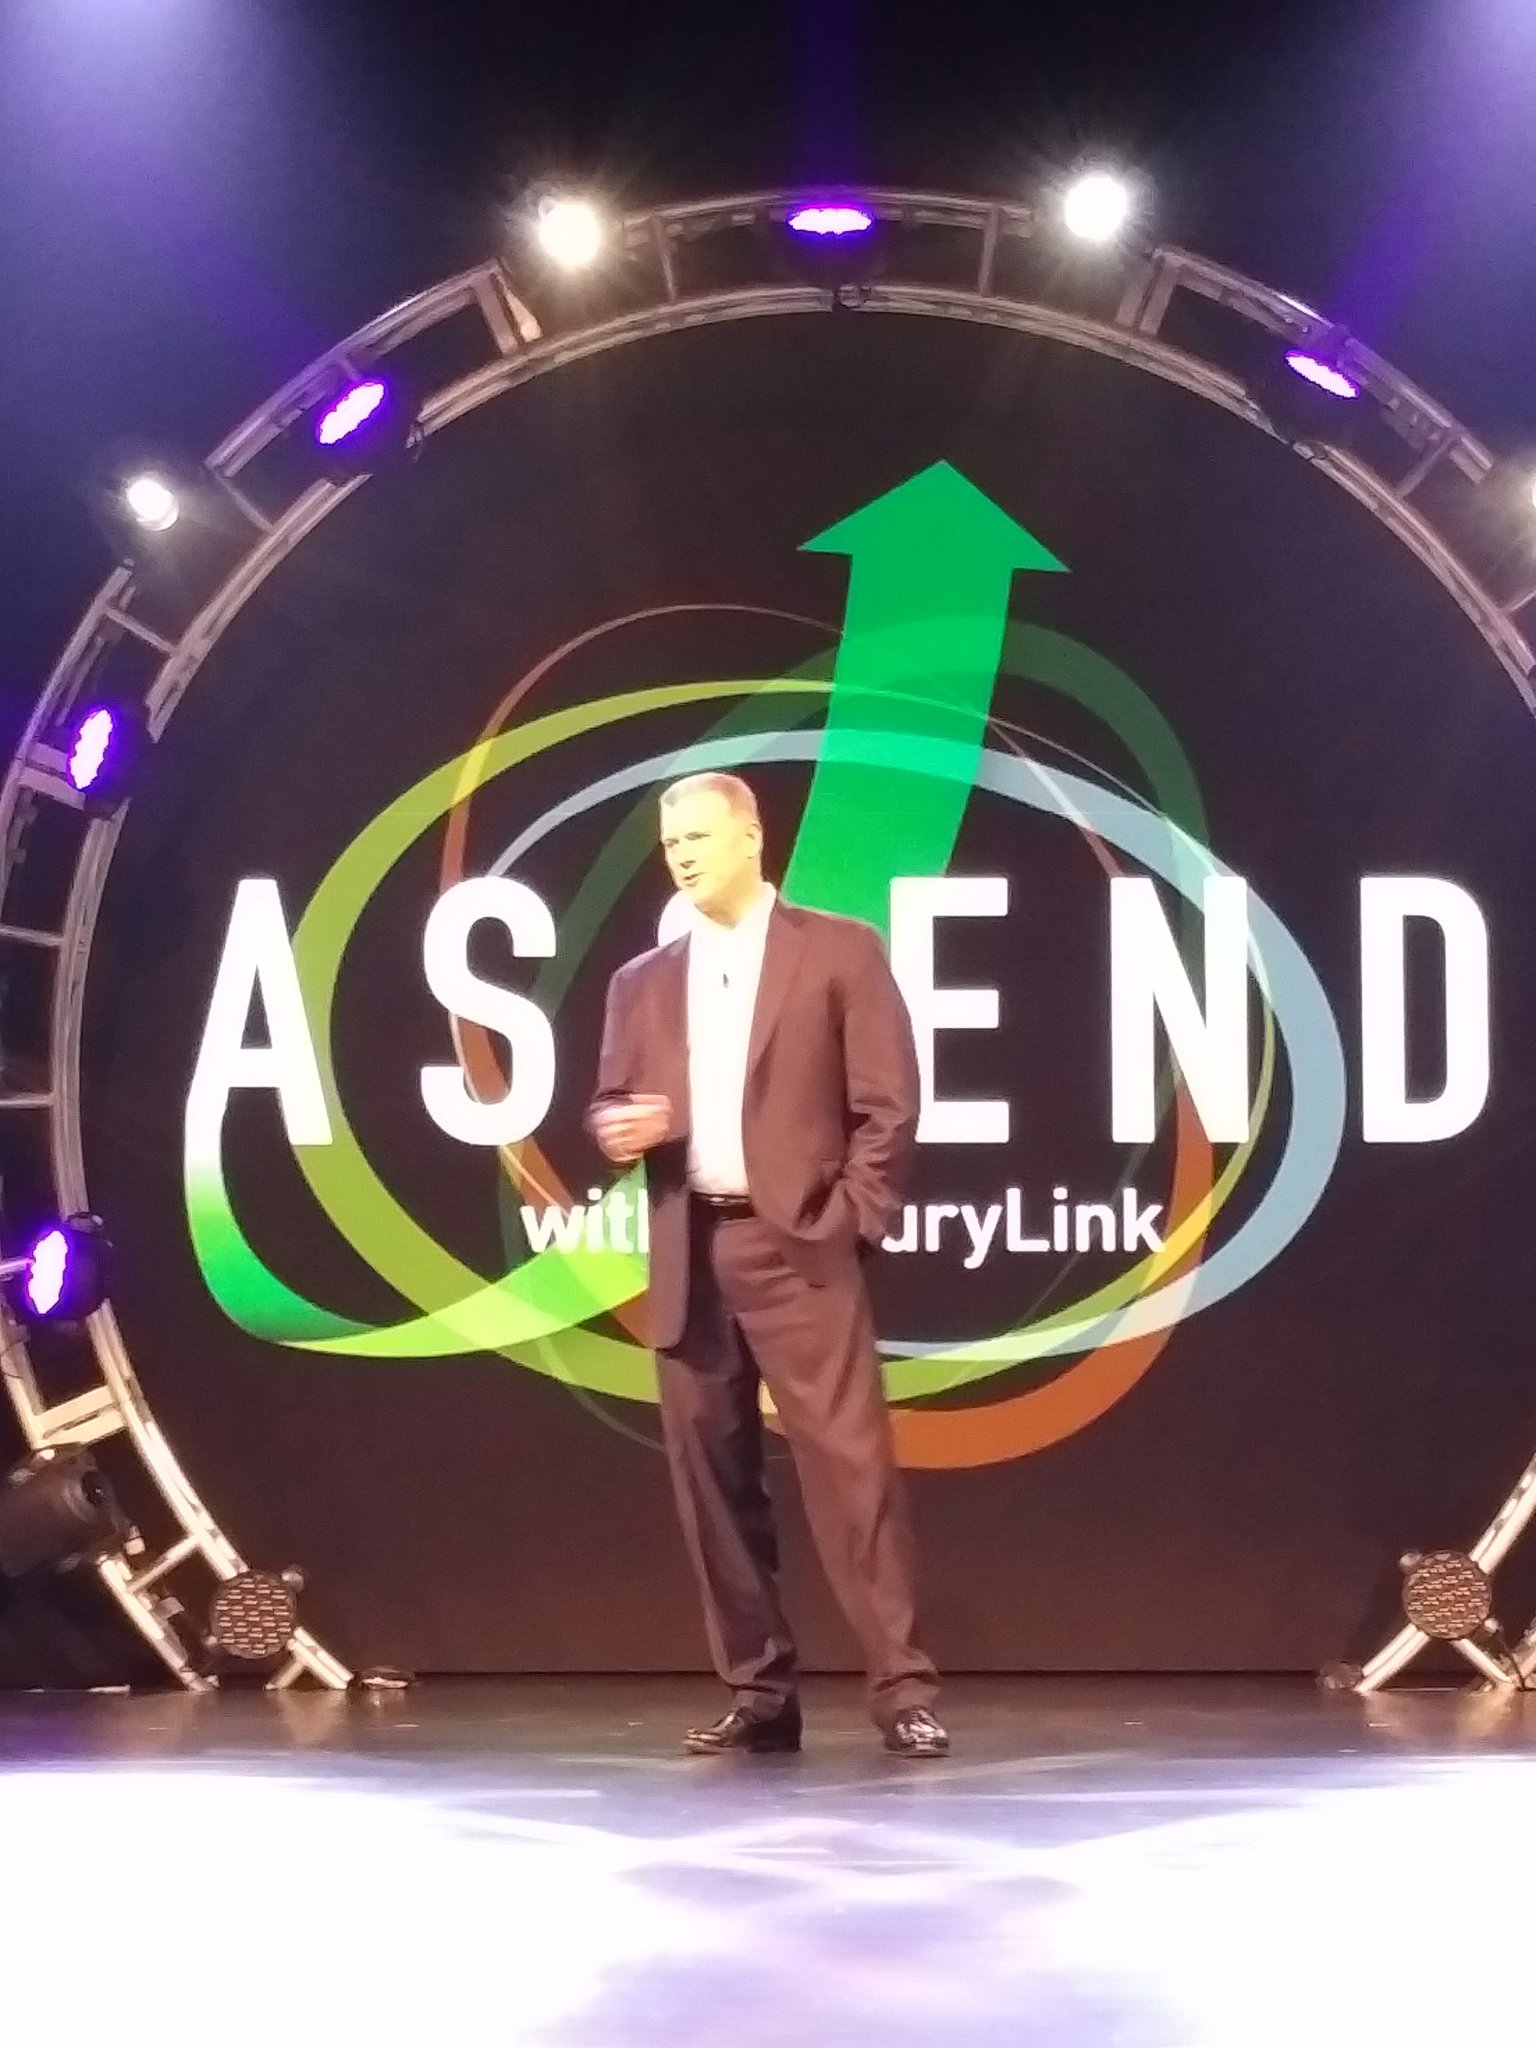 Next up - @dave_dyas with key message - at the end of the day - the customer must win. #CenturyLinkAscend https://t.co/LO0pqryUTs